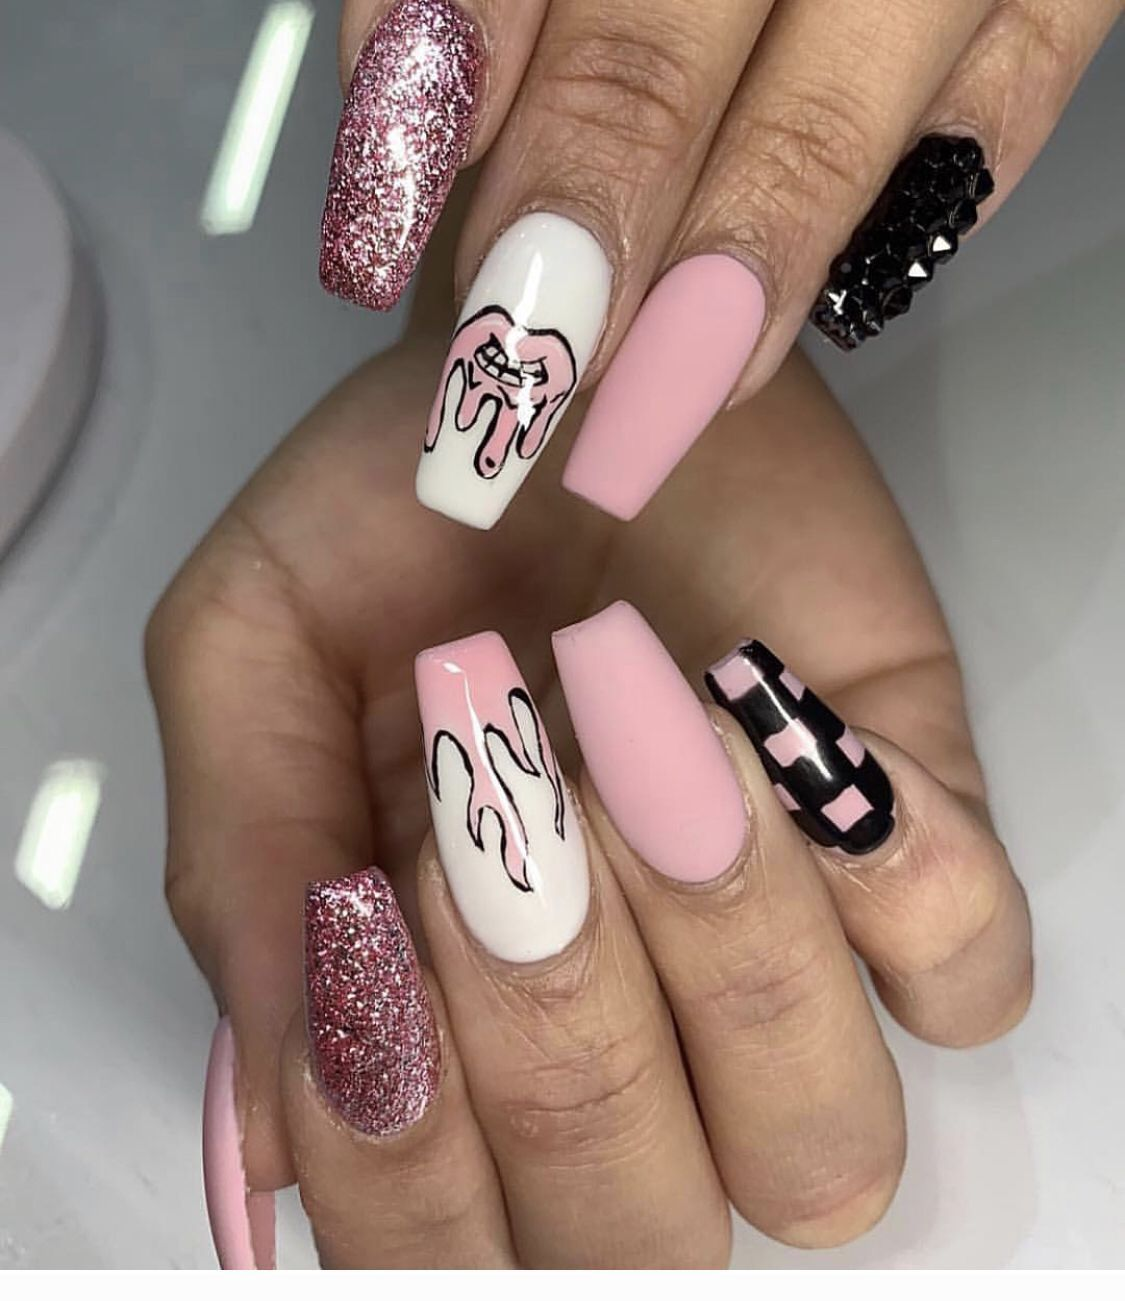 Black White Pink And Glitter Nail Art Coolladies Net In 2020 Edgy Nails Checkered Nails Swag Nails